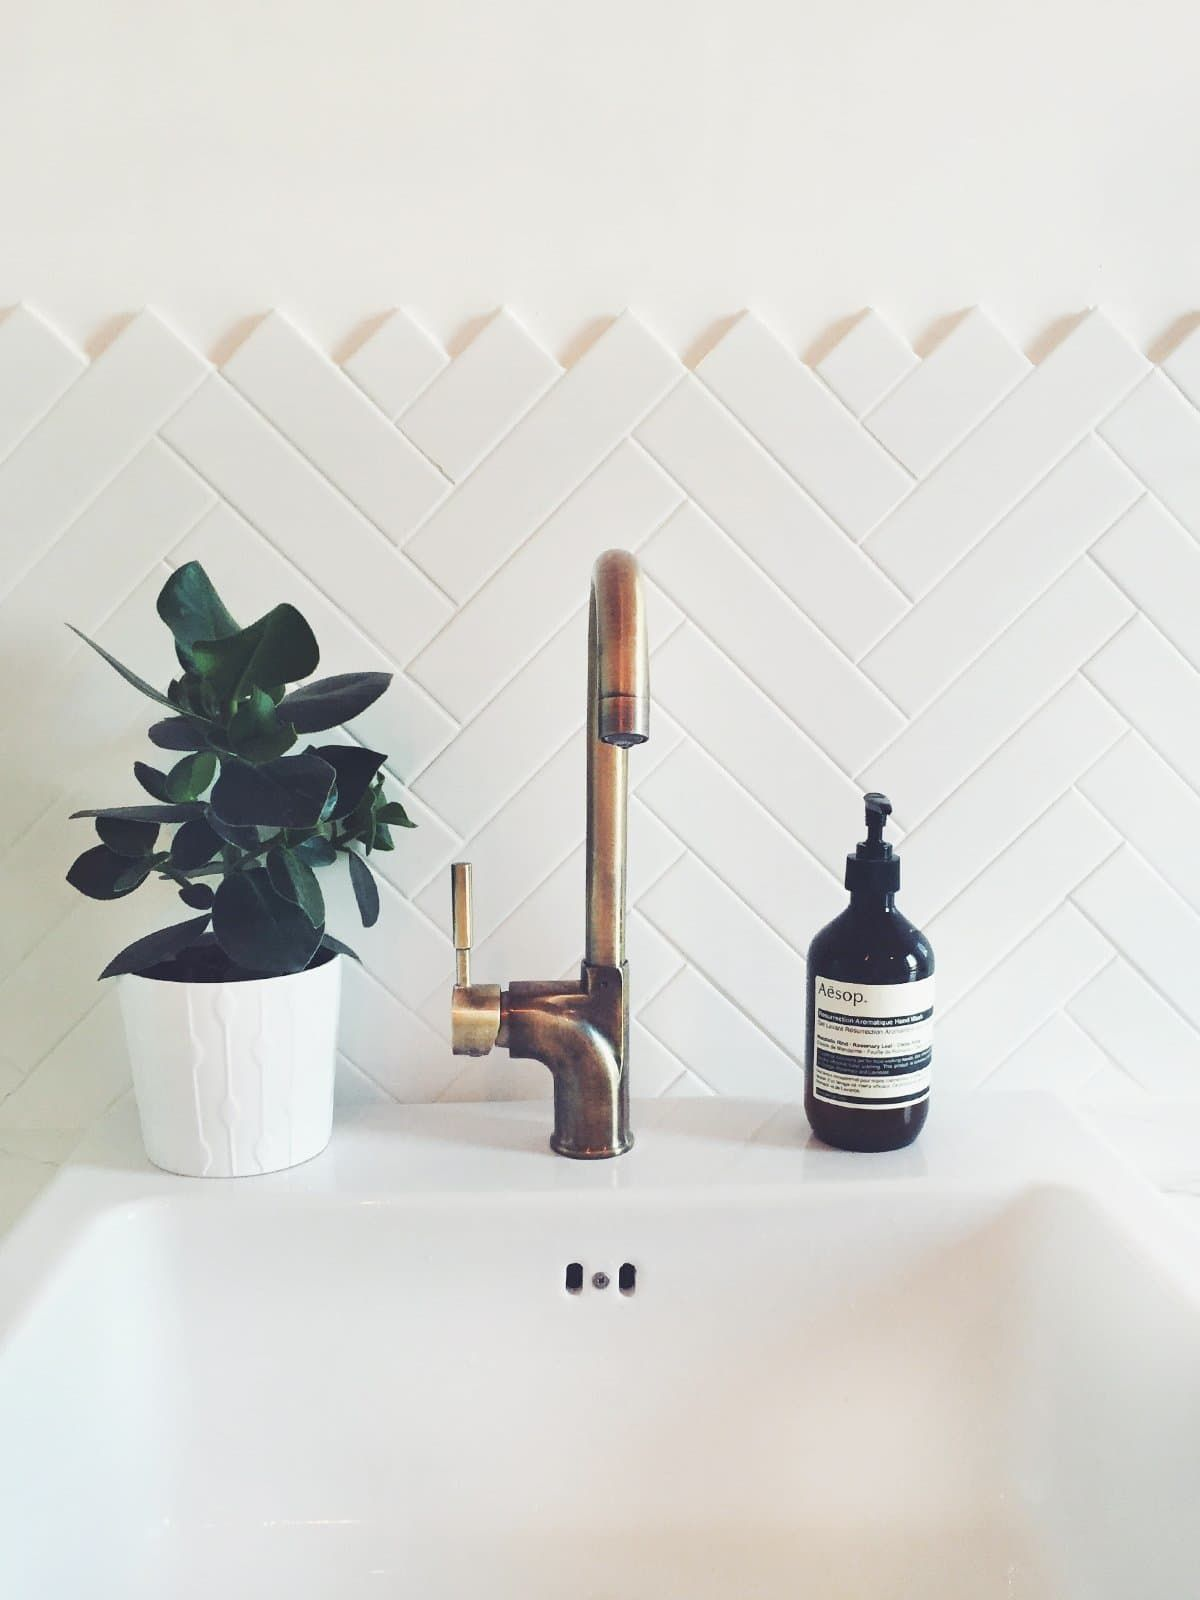 10 Interesting Things You Can Do With Plain White Tile   White tiles ...